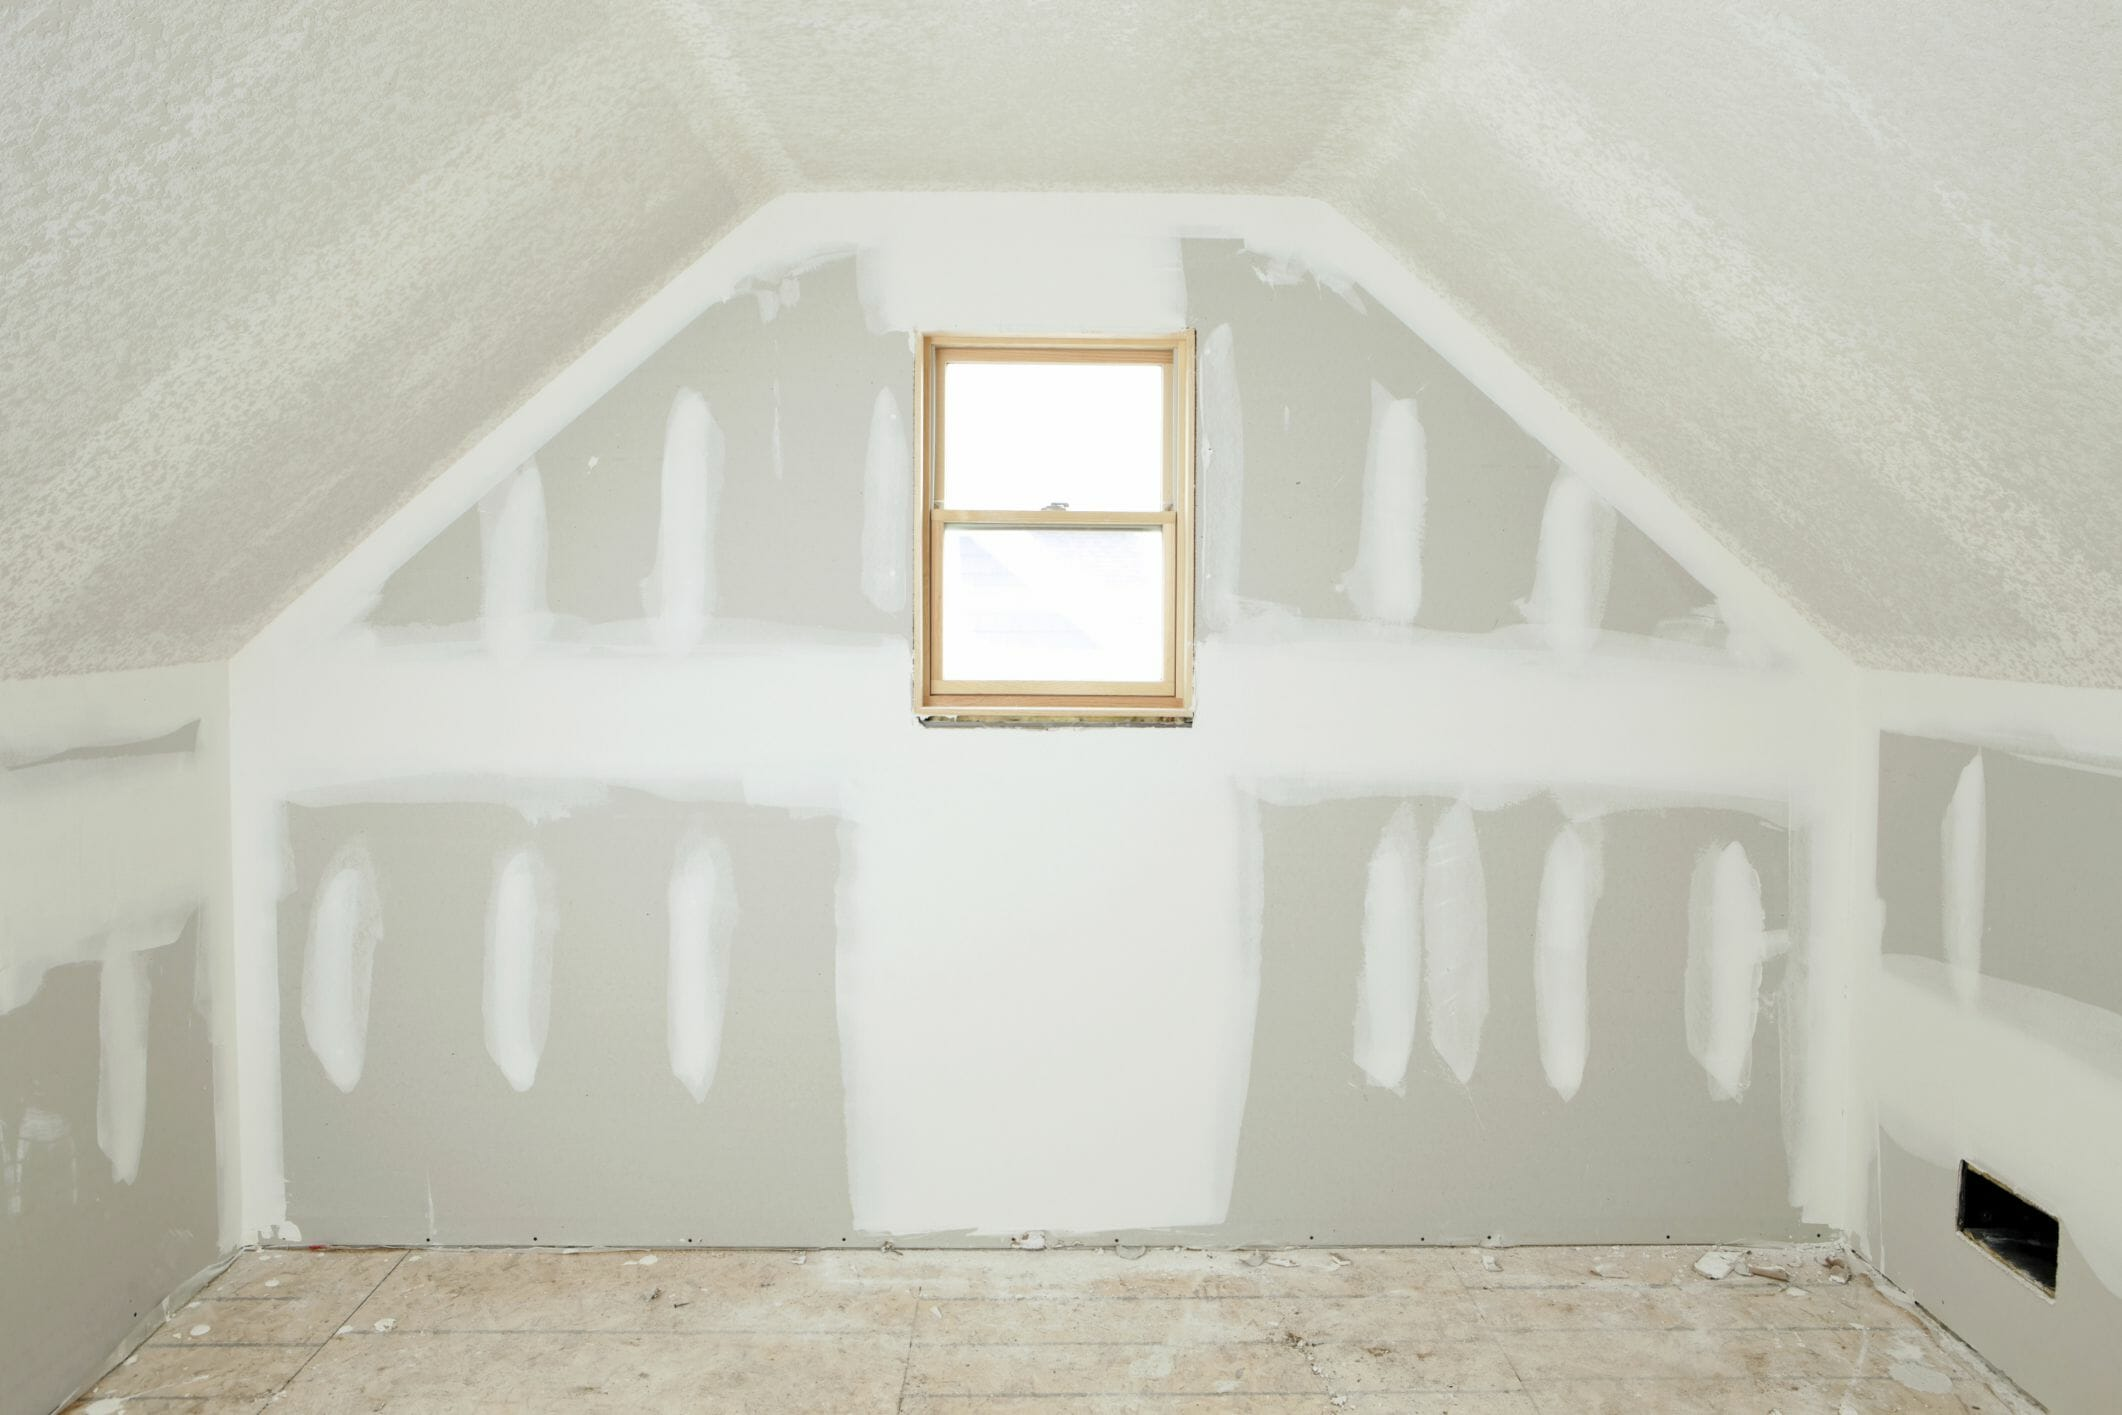 An Alternative To Traditional Drywall?